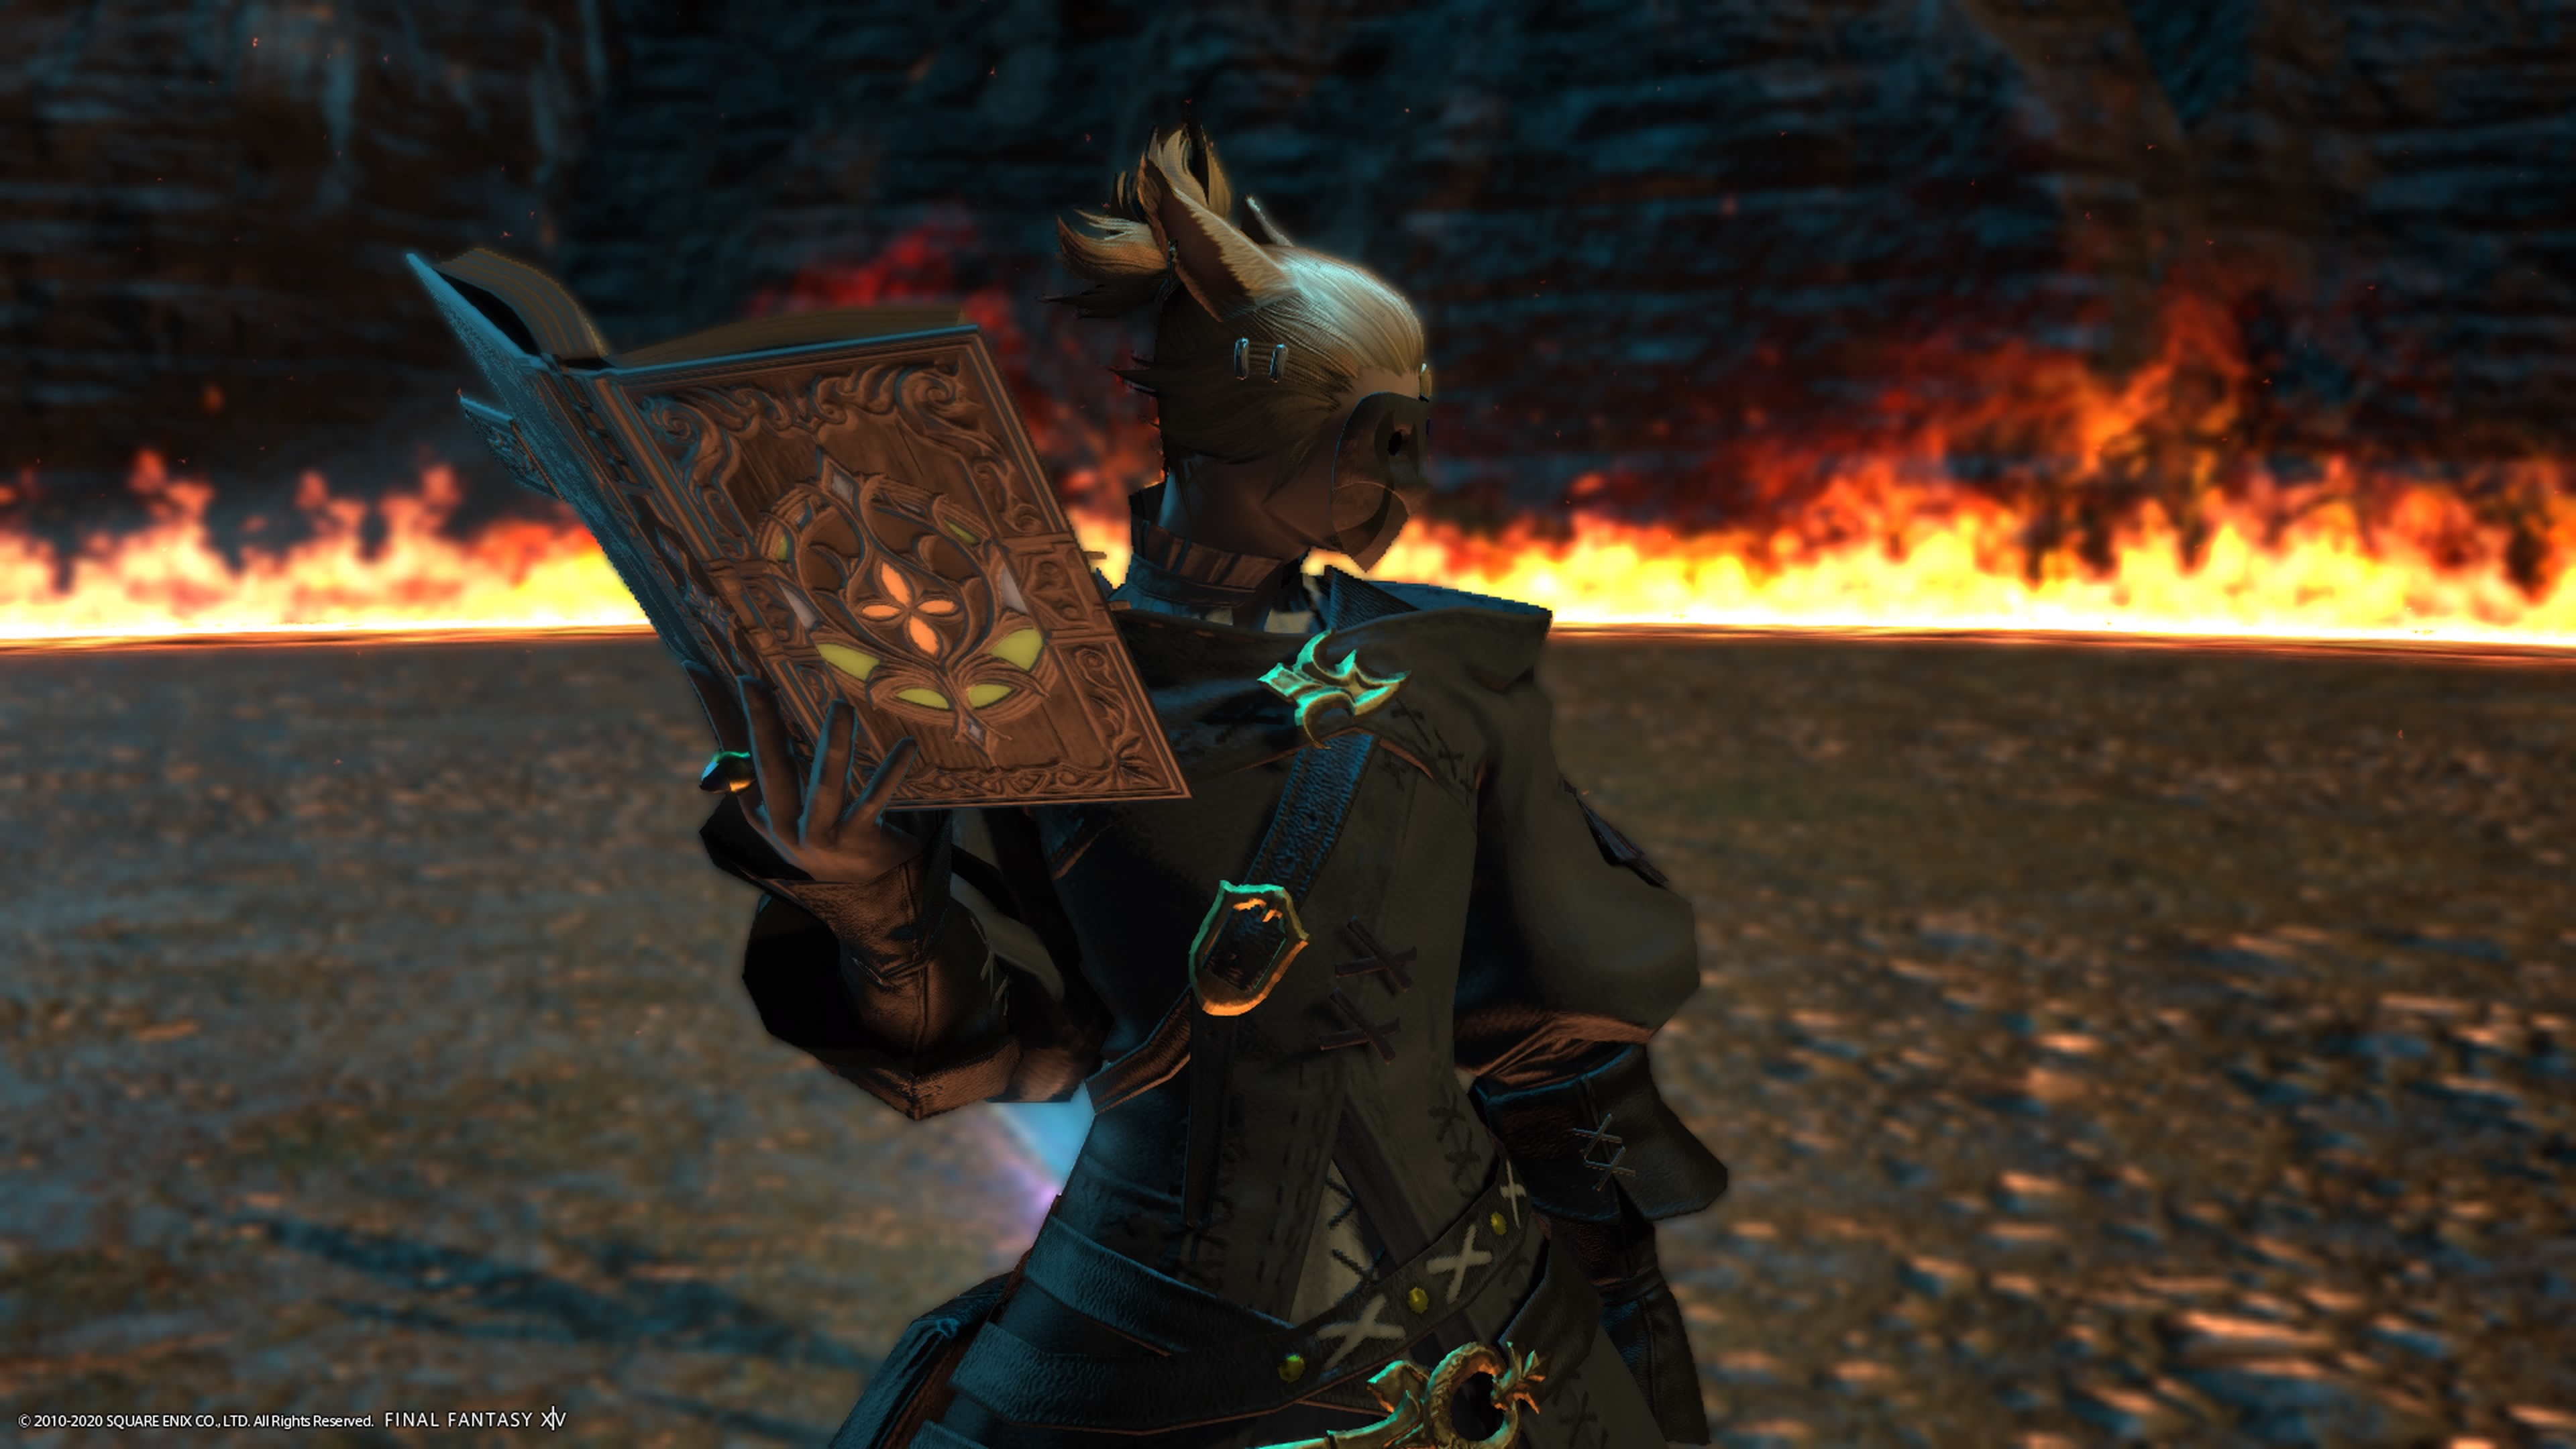 My character Atlas looking off camera, holding a book up with one hand. There is fire in the background.